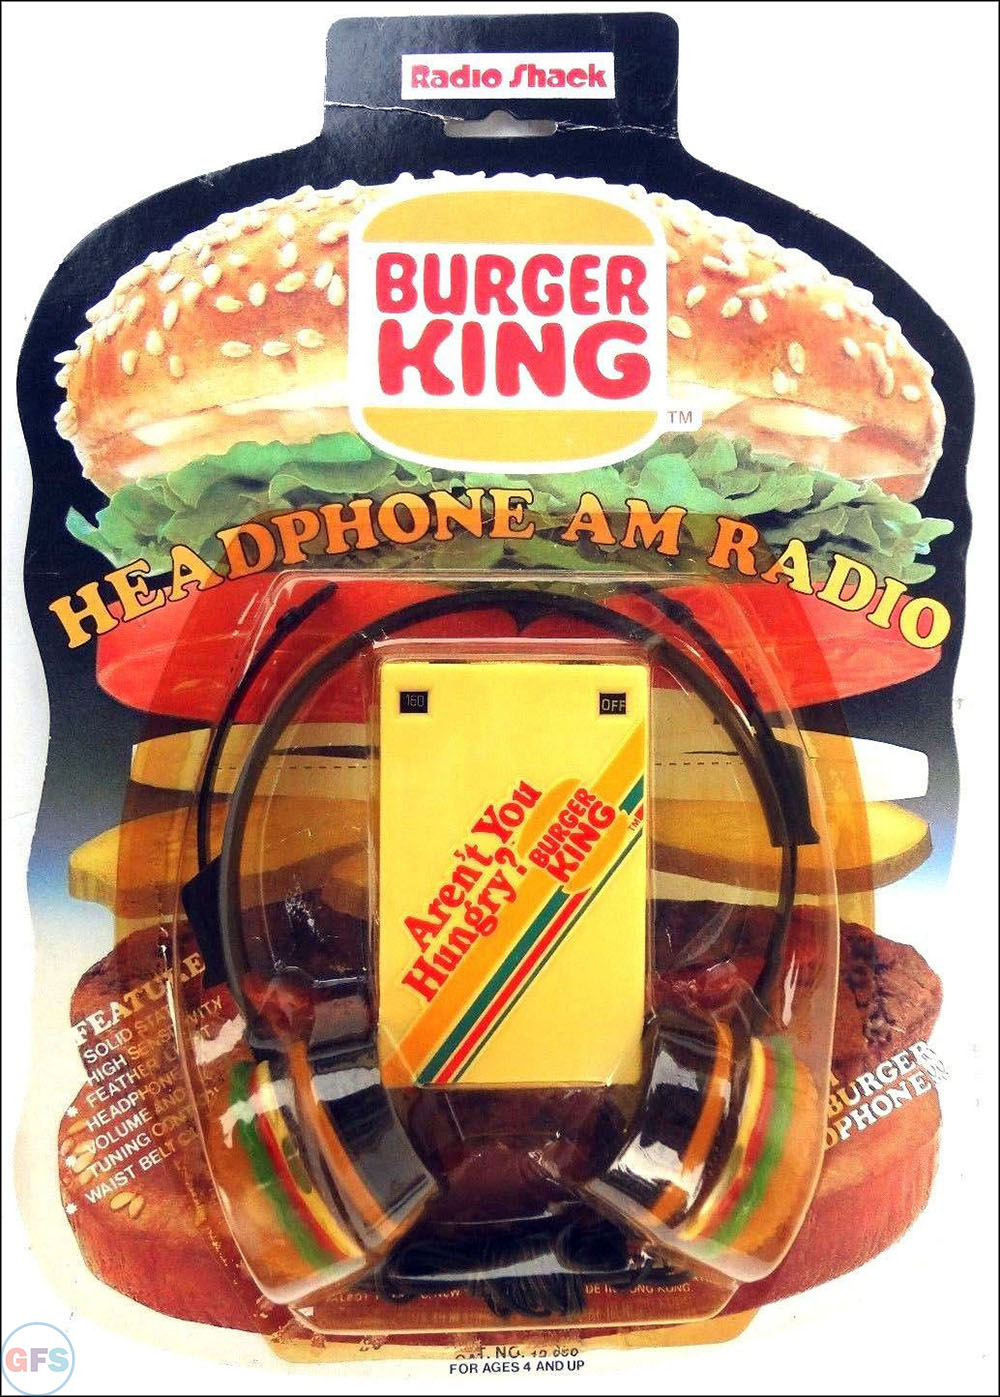 Vintage 1983 Radio Shack Burger King AM Radio